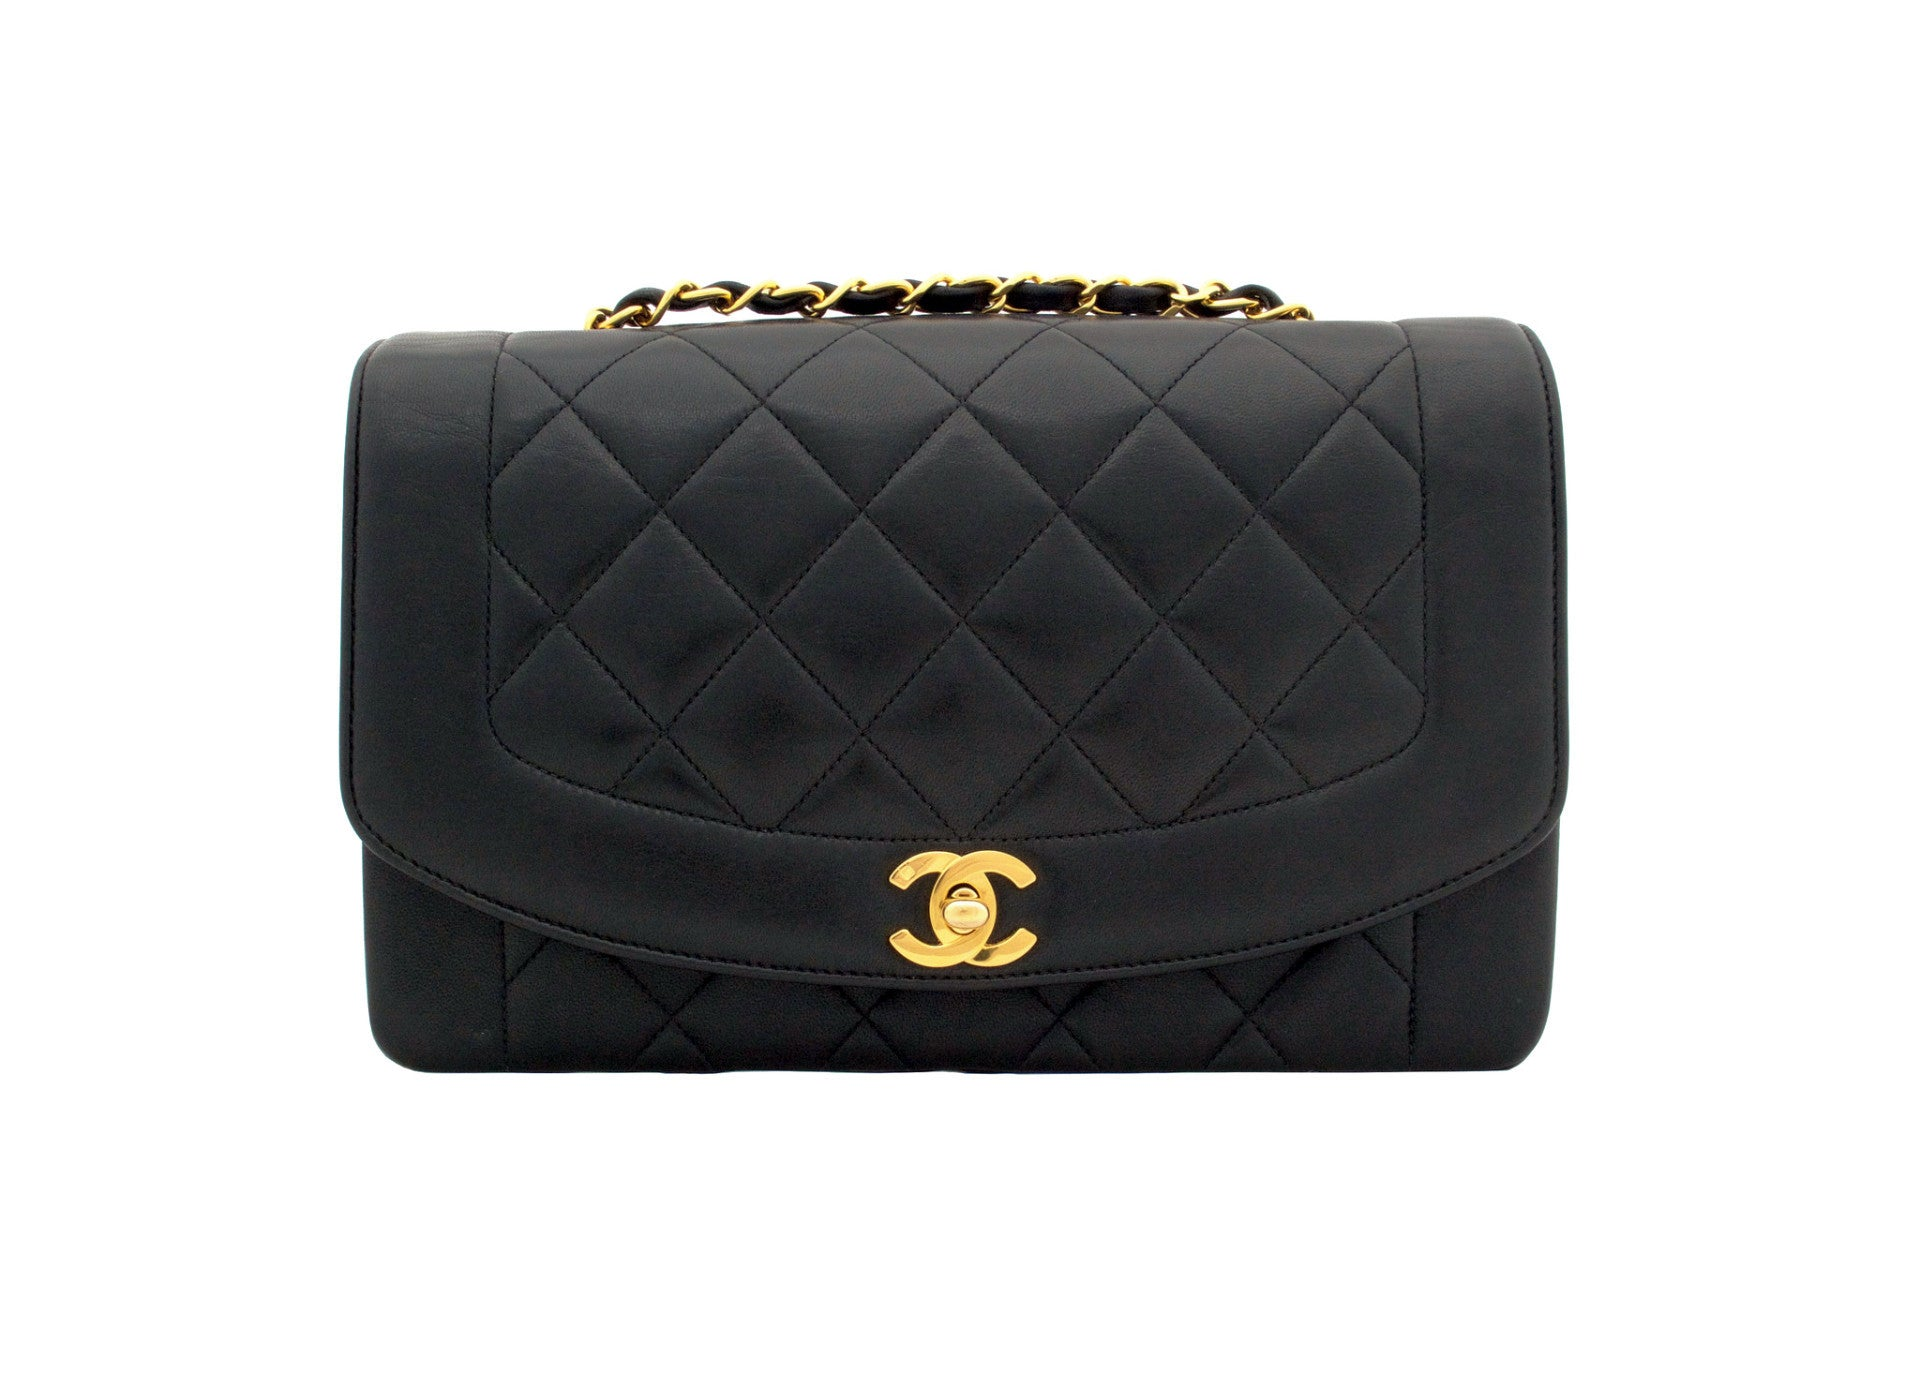 4d23a91fd94b CHANEL VINTAGE BAG - Quilted Classic Flap Bag in Black Diana bag - Vintage  District